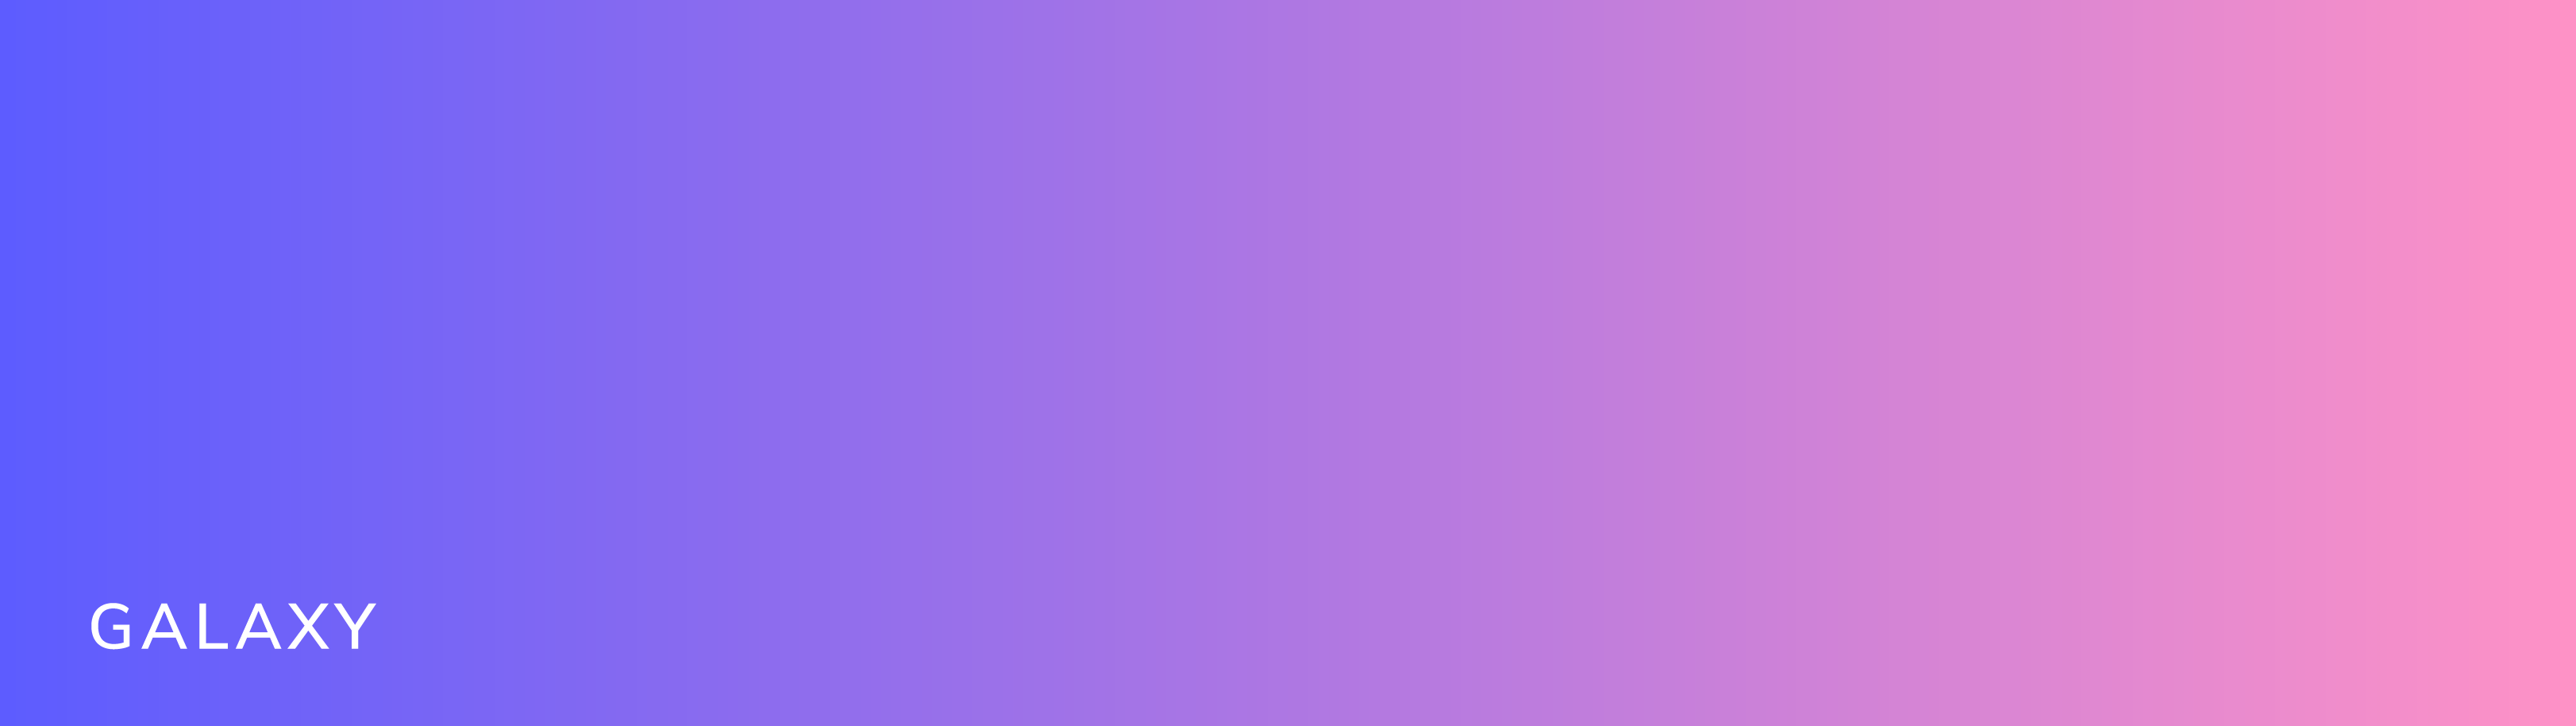 This brand gradient is called galaxy. It starts as a purple on the left and shifts to a pink on the right.